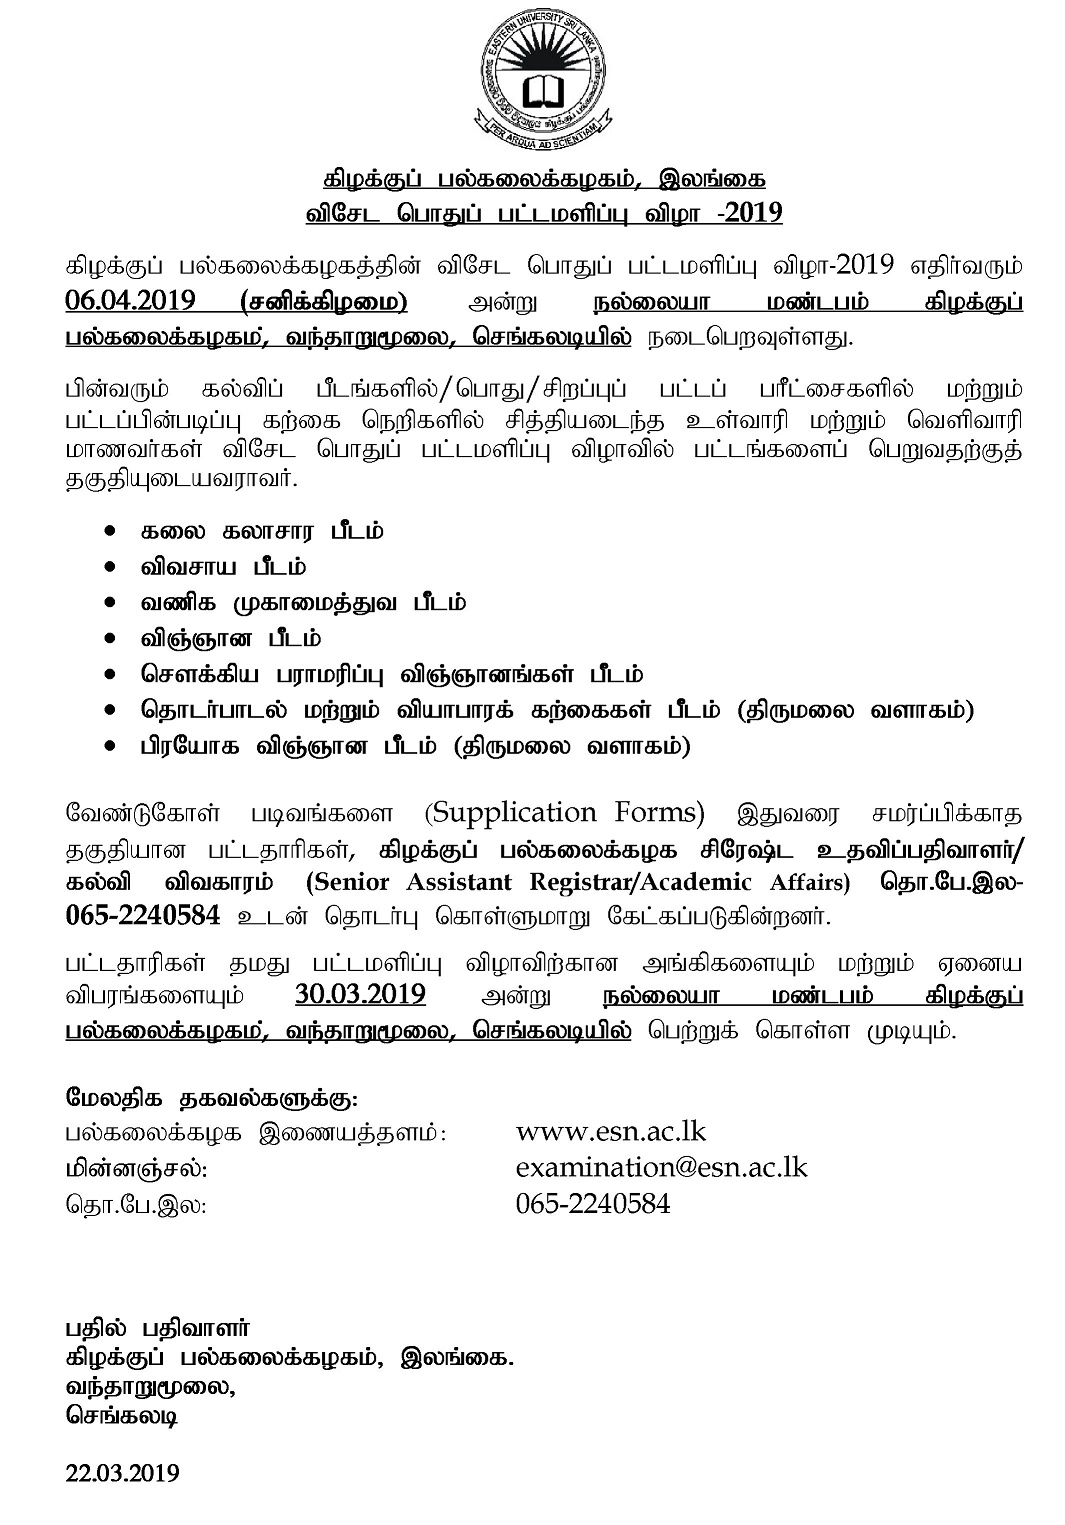 Convocation tamil media advertisement 2019